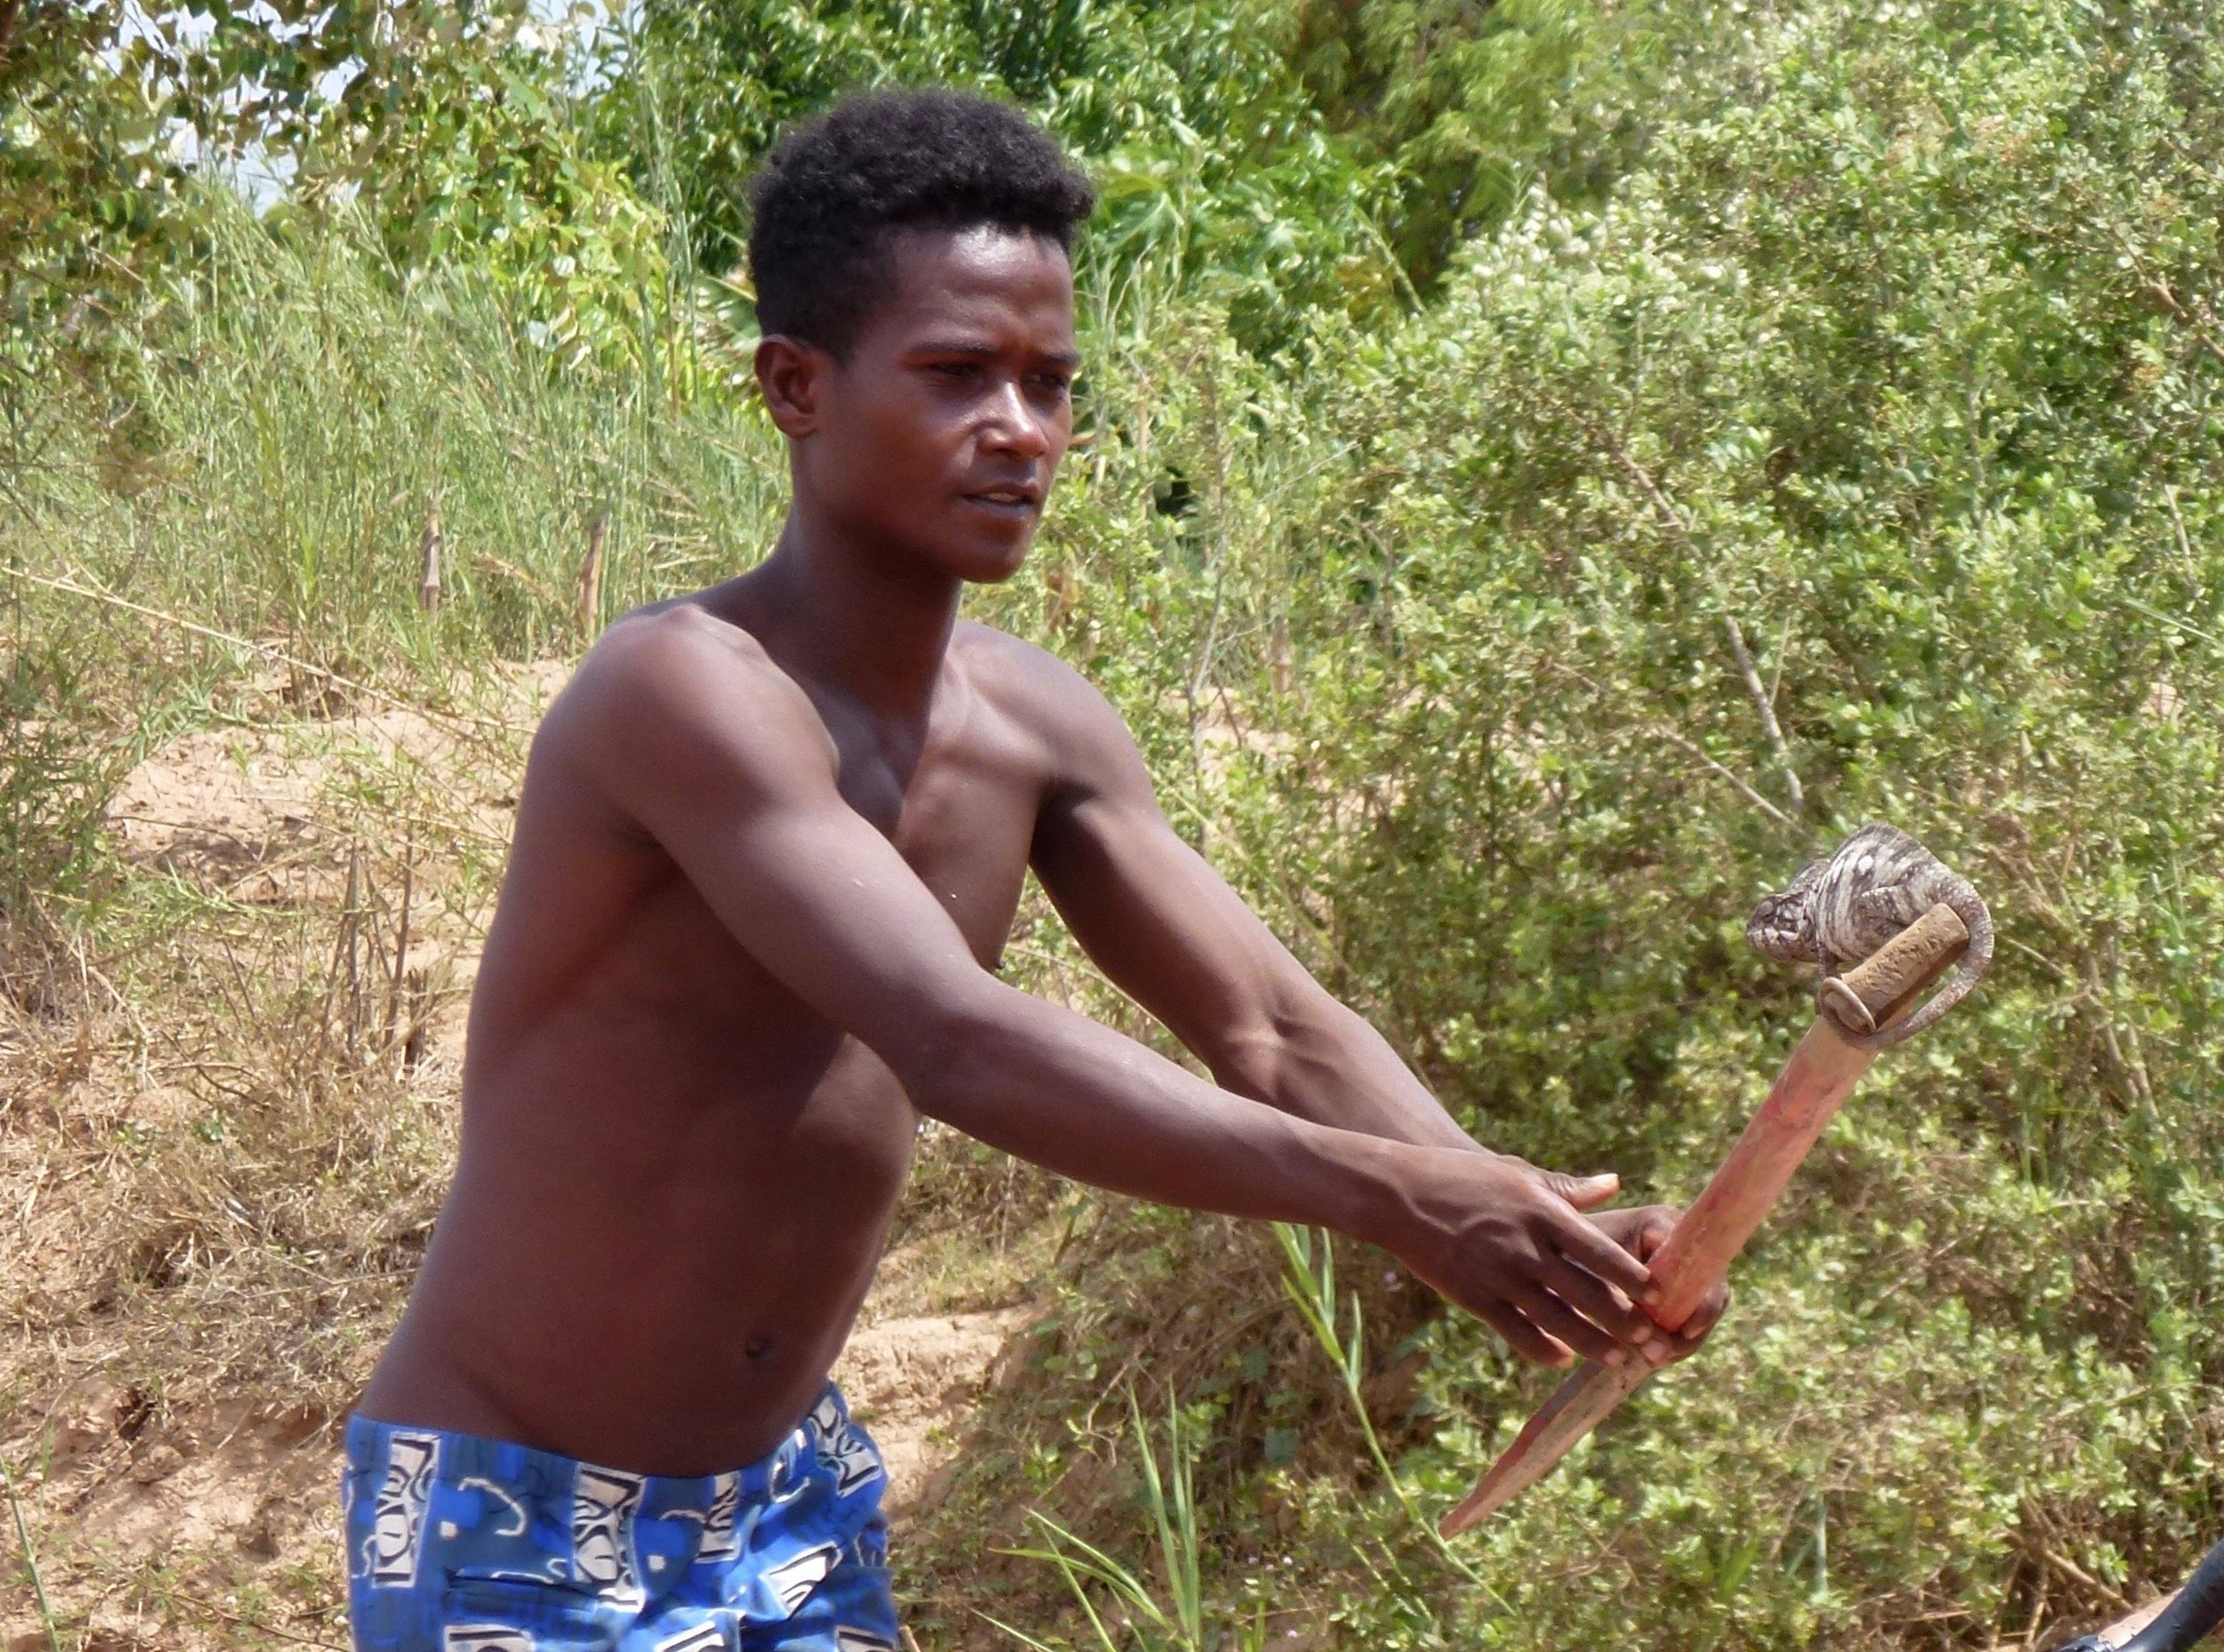 Silvan, one of the rowers catching an Oustalet's chameleon spotted from the canoe.